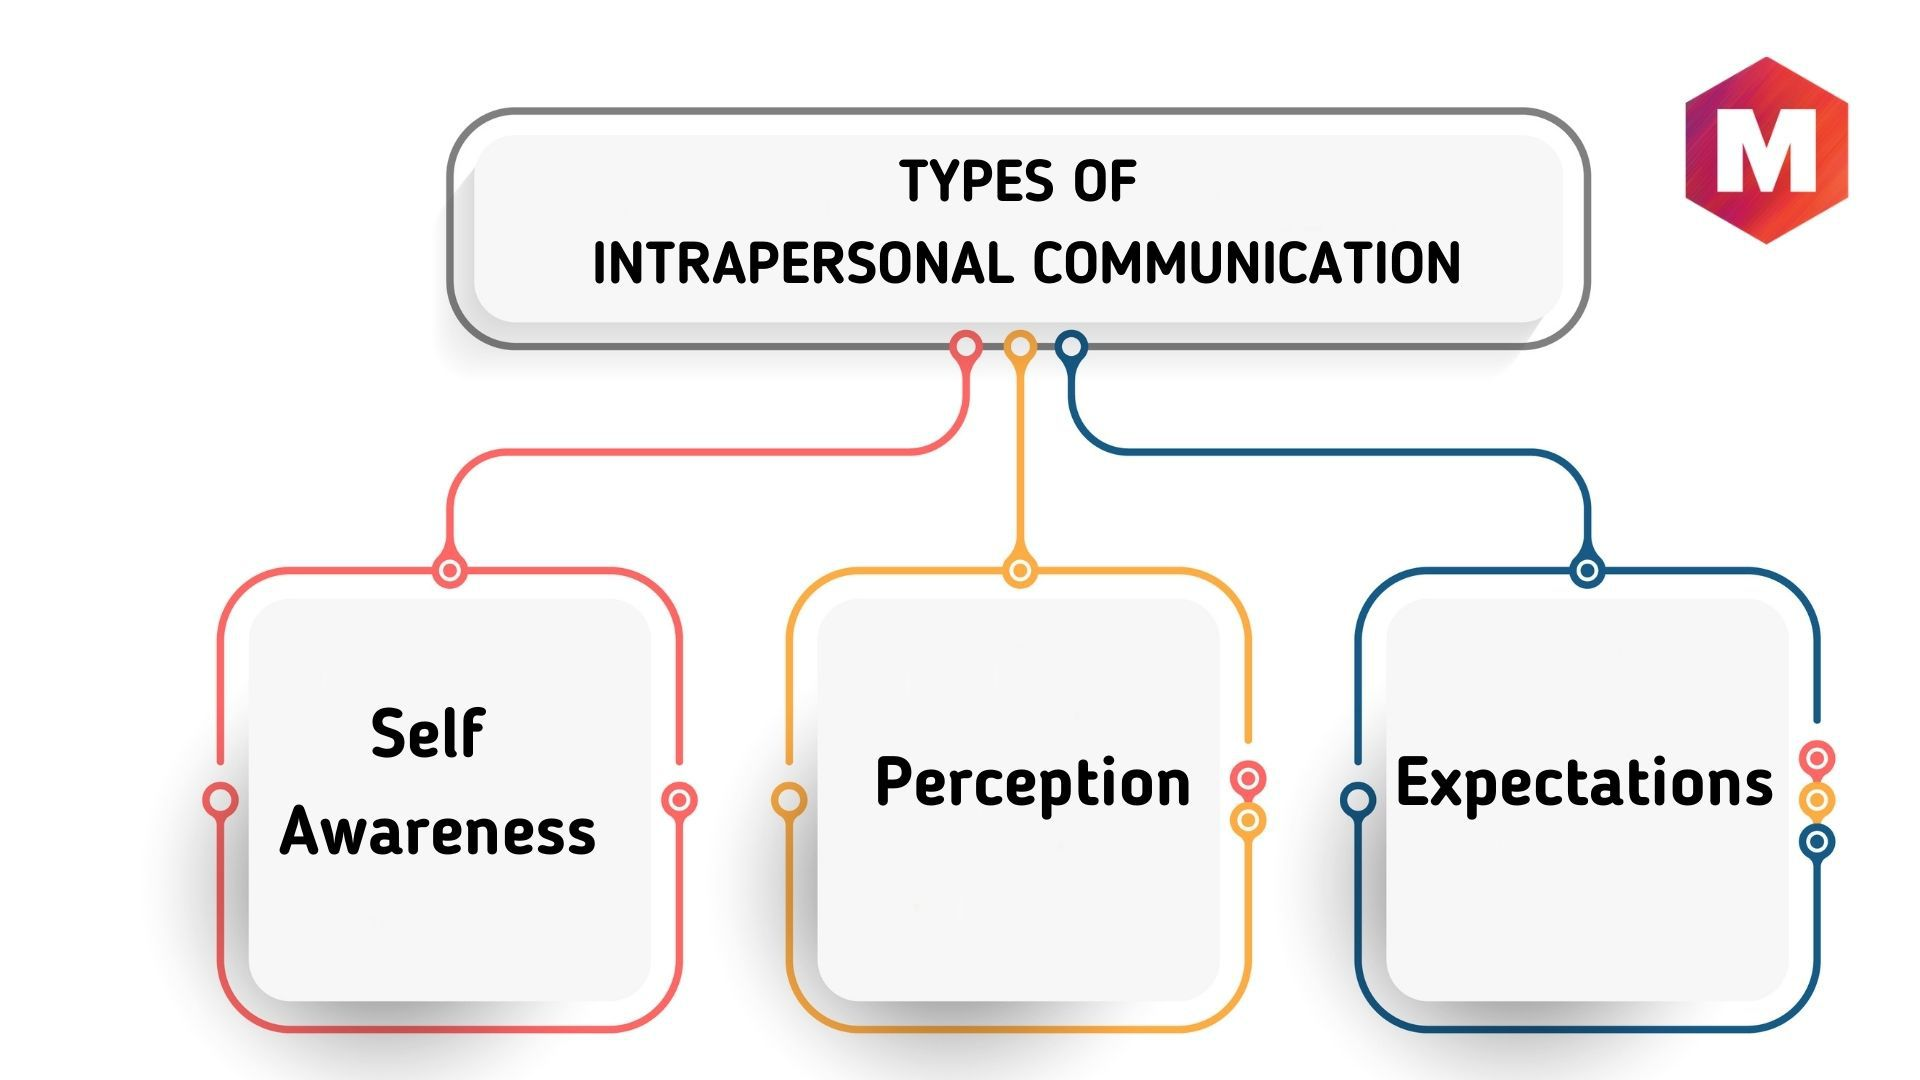 TYPES OF INTRAPERSONAL COMMUNICATION